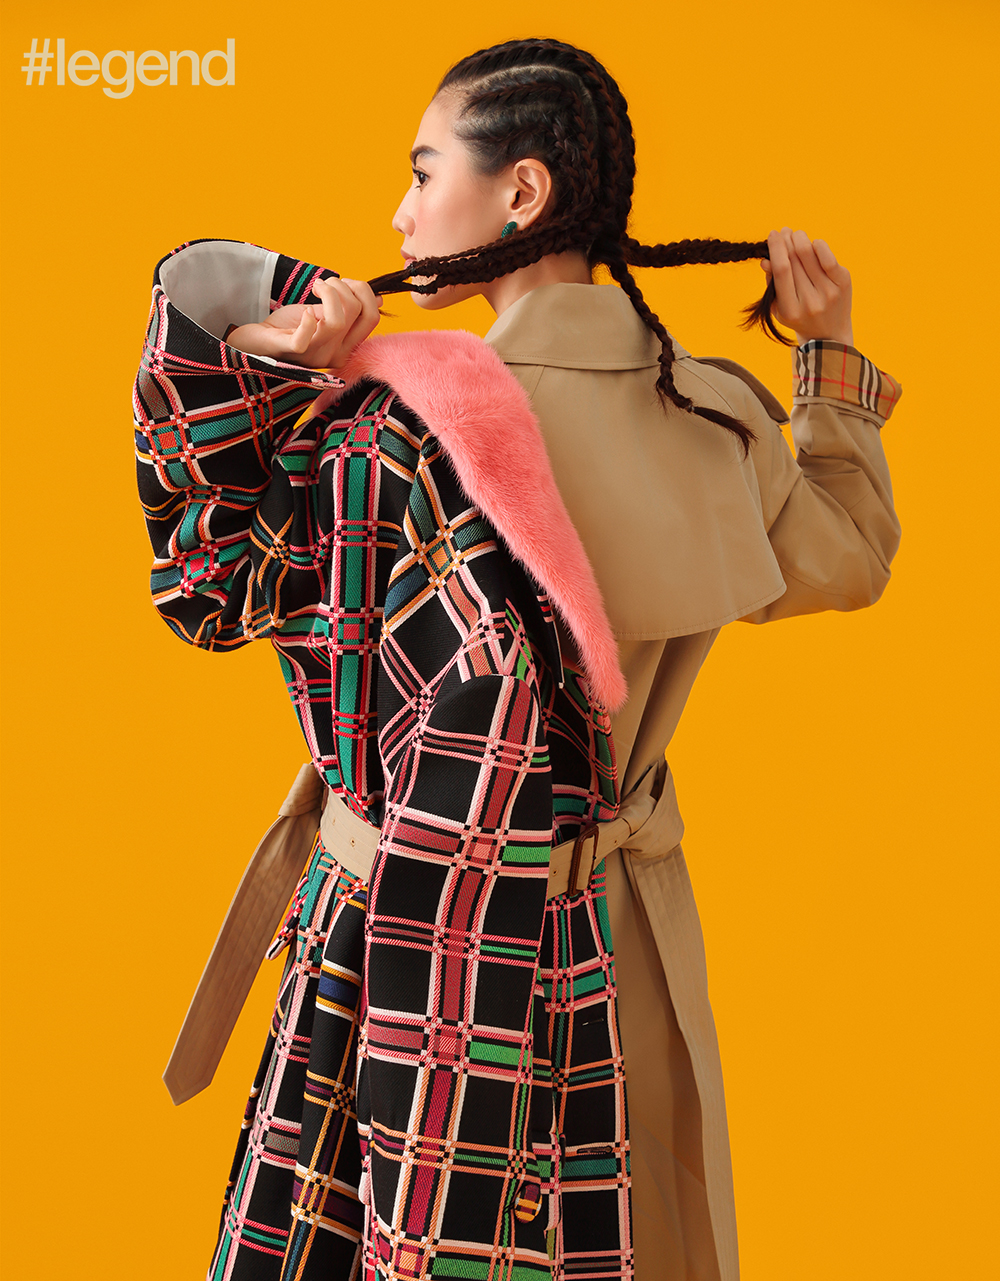 Checked coat by Miu Miu, trenchcoat by Burberry, earrings by Céline